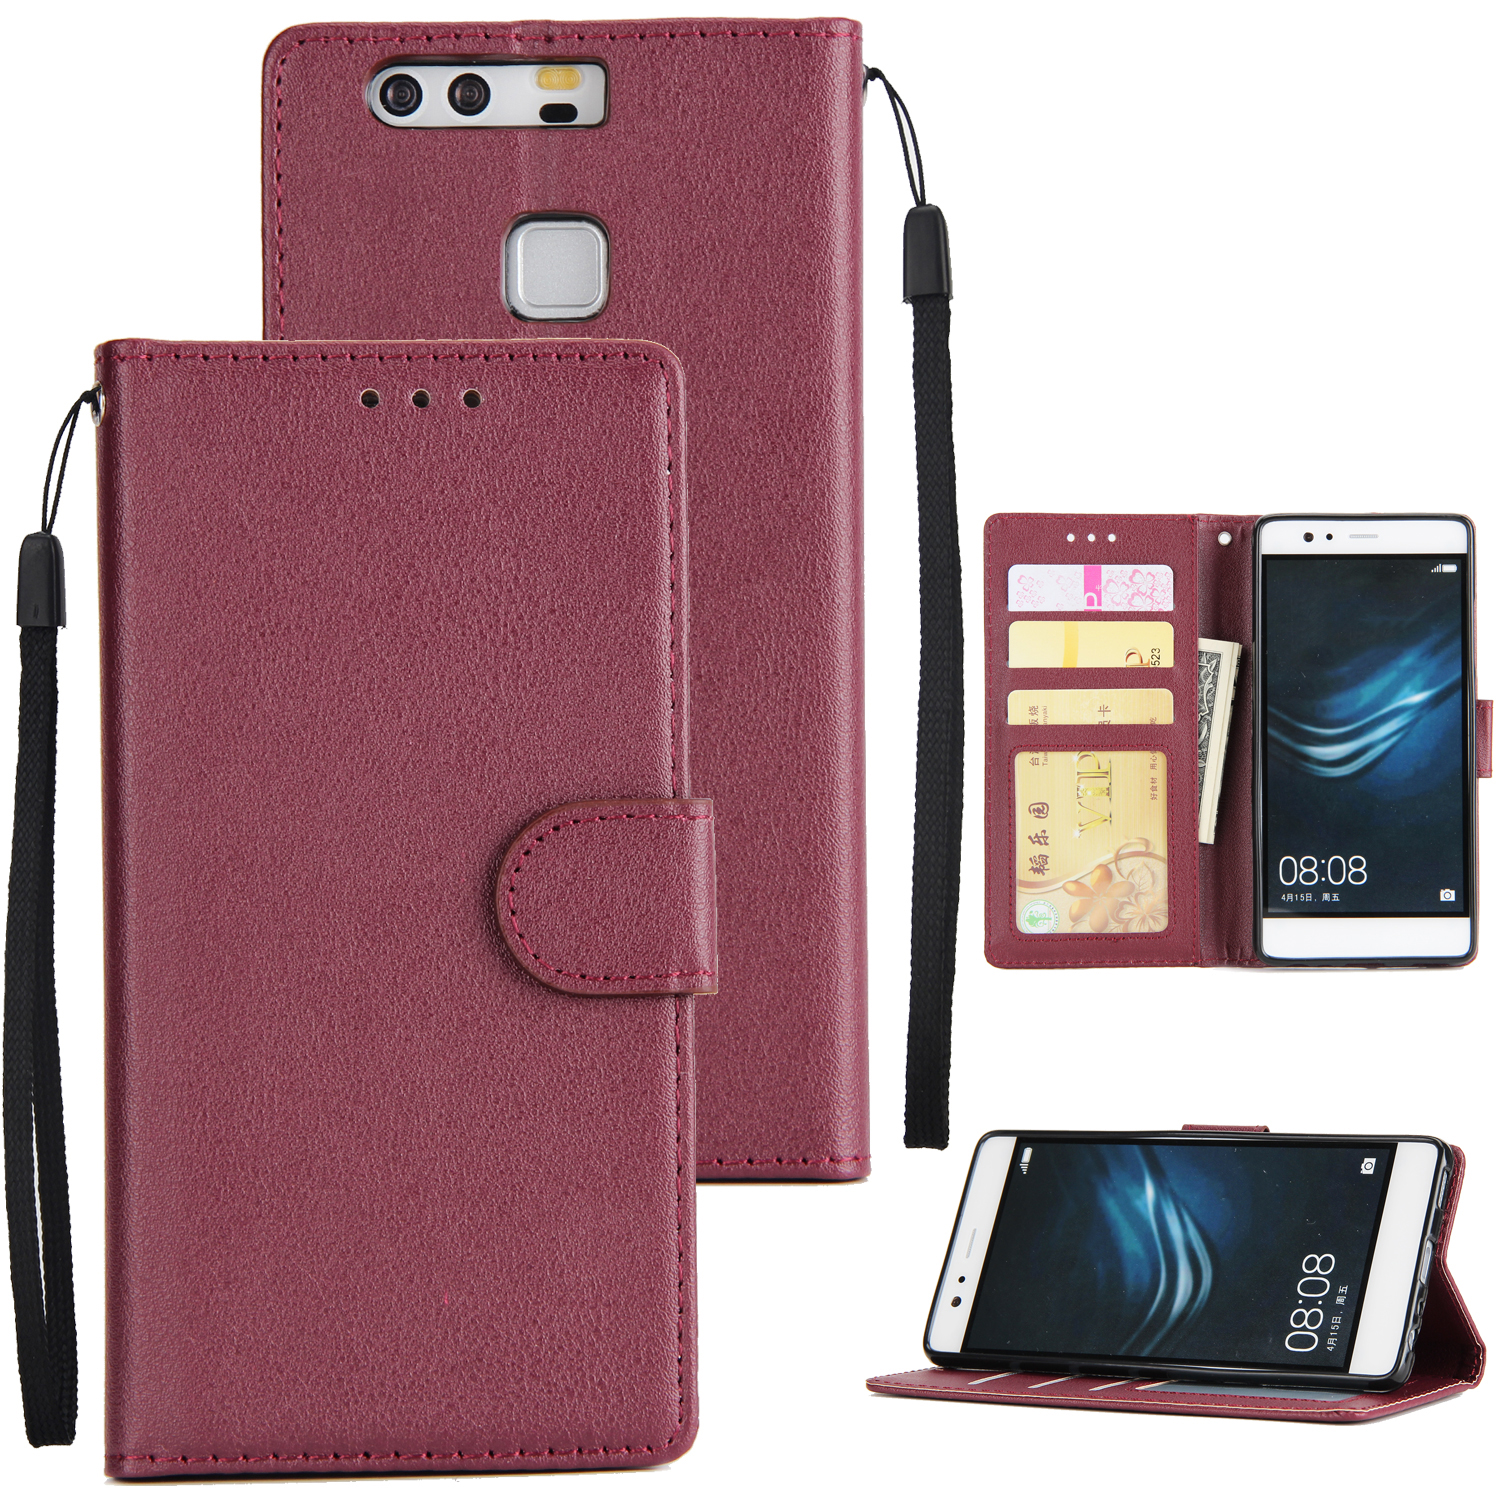 For Huawei P9 plus PU Leather Smart Phone Case Protective Cover with Buckle & 3 Card Position  wine red